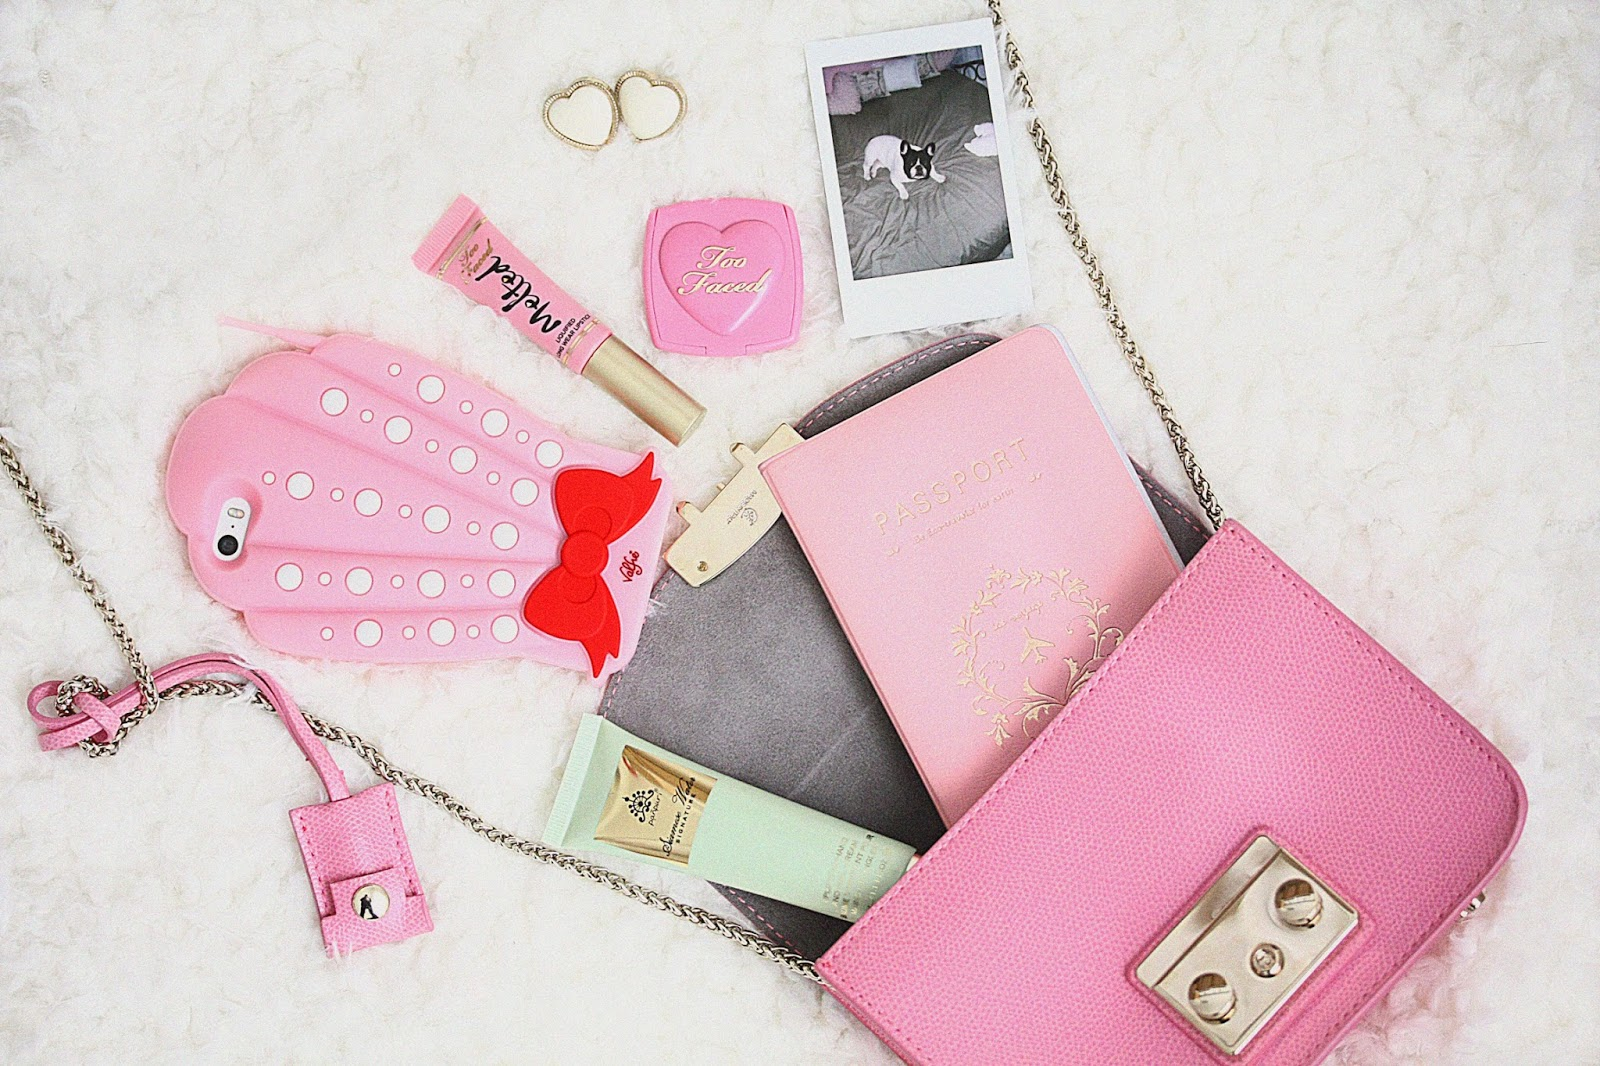 http://www.rosemademoiselle.com/2015/11/whats-in-my-bag.html